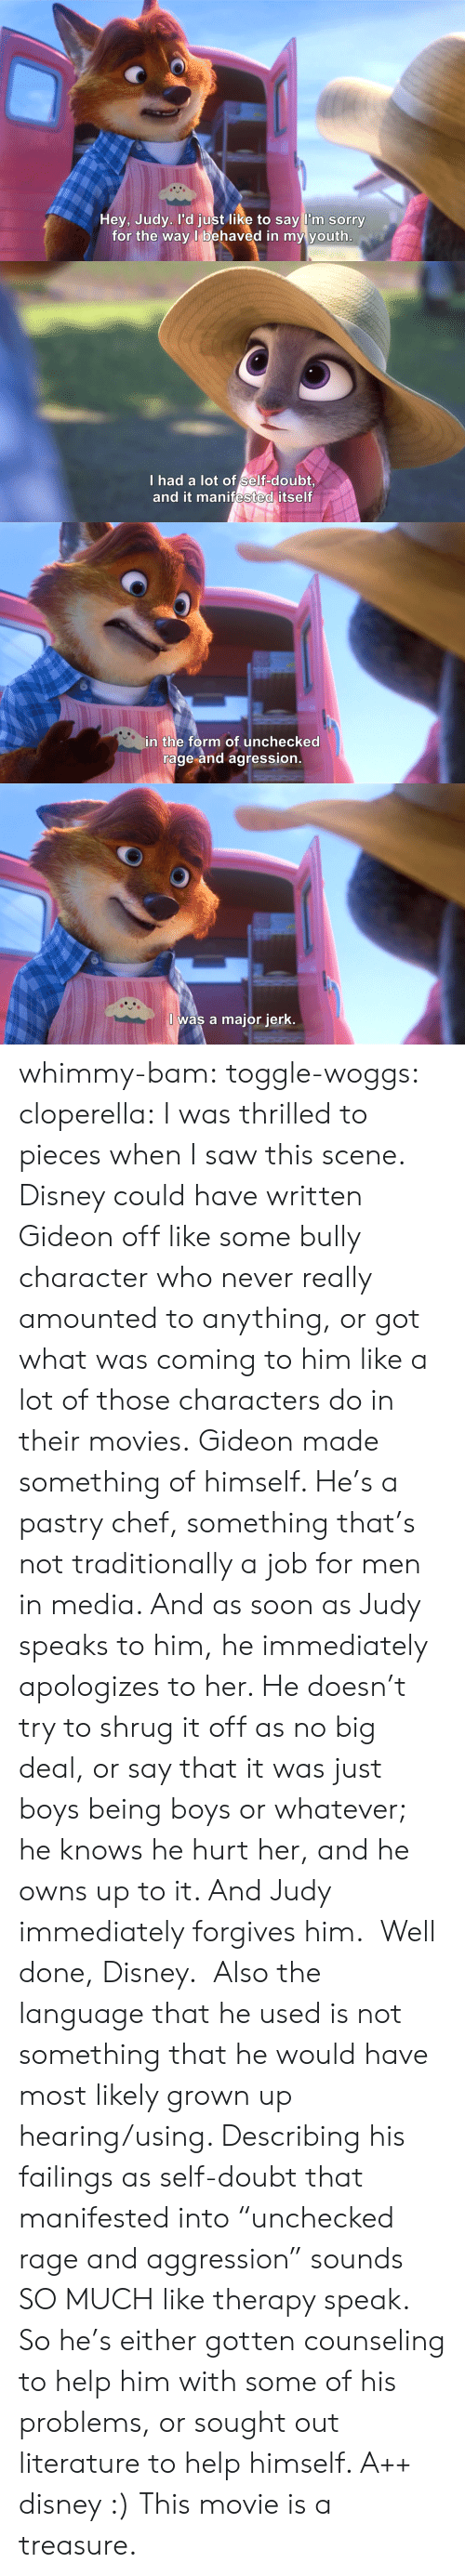 """Disney, Movies, and Saw: Hey, Judy. l'd just like to say  I'm sorry  for the way l behaved in my youth   I had a lot of self-doubt  and it manifested itself   in the form of unchecked  rage and agression   I was a major jerk. whimmy-bam:  toggle-woggs:  cloperella:  I was thrilled to pieces when I saw this scene. Disney could have written Gideon off like some bully character who never really amounted to anything, or got what was coming to him like a lot of those characters do in their movies.Gideon made something of himself. He's a pastry chef, something that's not traditionally a job for men in media. And as soon as Judy speaks to him, he immediately apologizes to her. He doesn't try to shrug it off as no big deal, or say that it was just boys being boys or whatever; he knows he hurt her, and he owns up to it. And Judy immediately forgives him. Well done, Disney.  Also the language that he used is not something that he would have most likely grown up hearing/using. Describing his failings as self-doubt that manifested into""""unchecked rage and aggression"""" sounds SO MUCH like therapy speak. So he's either gotten counseling to help him with some of his problems, or sought out literature to help himself. A++ disney :)  This movie is a treasure."""